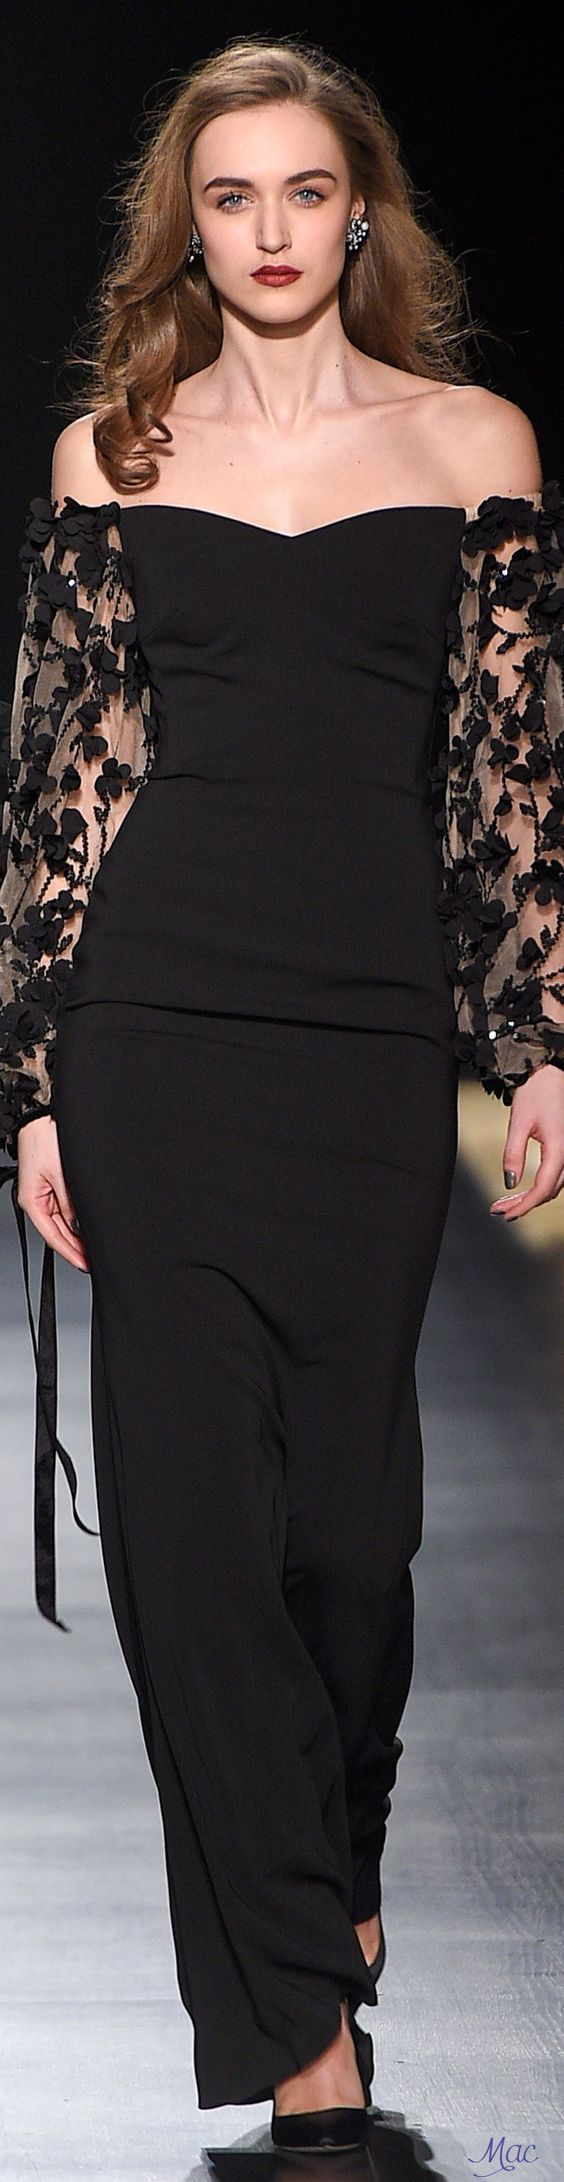 Badgley Mischka.